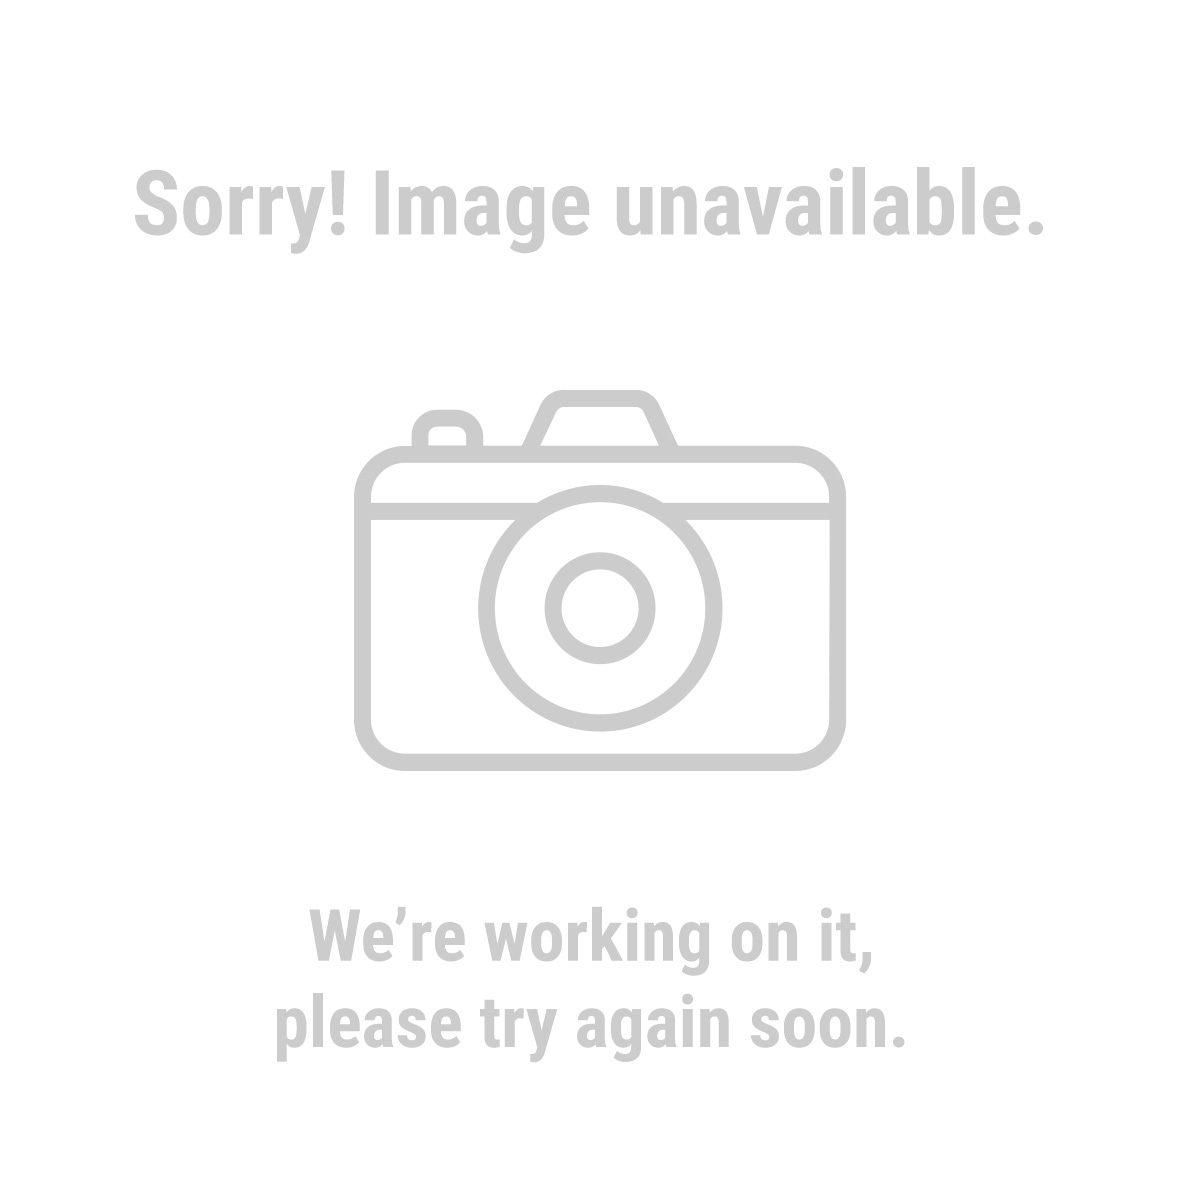 1 Horsepower Shallow Well Pump with Stainless Steel Housing